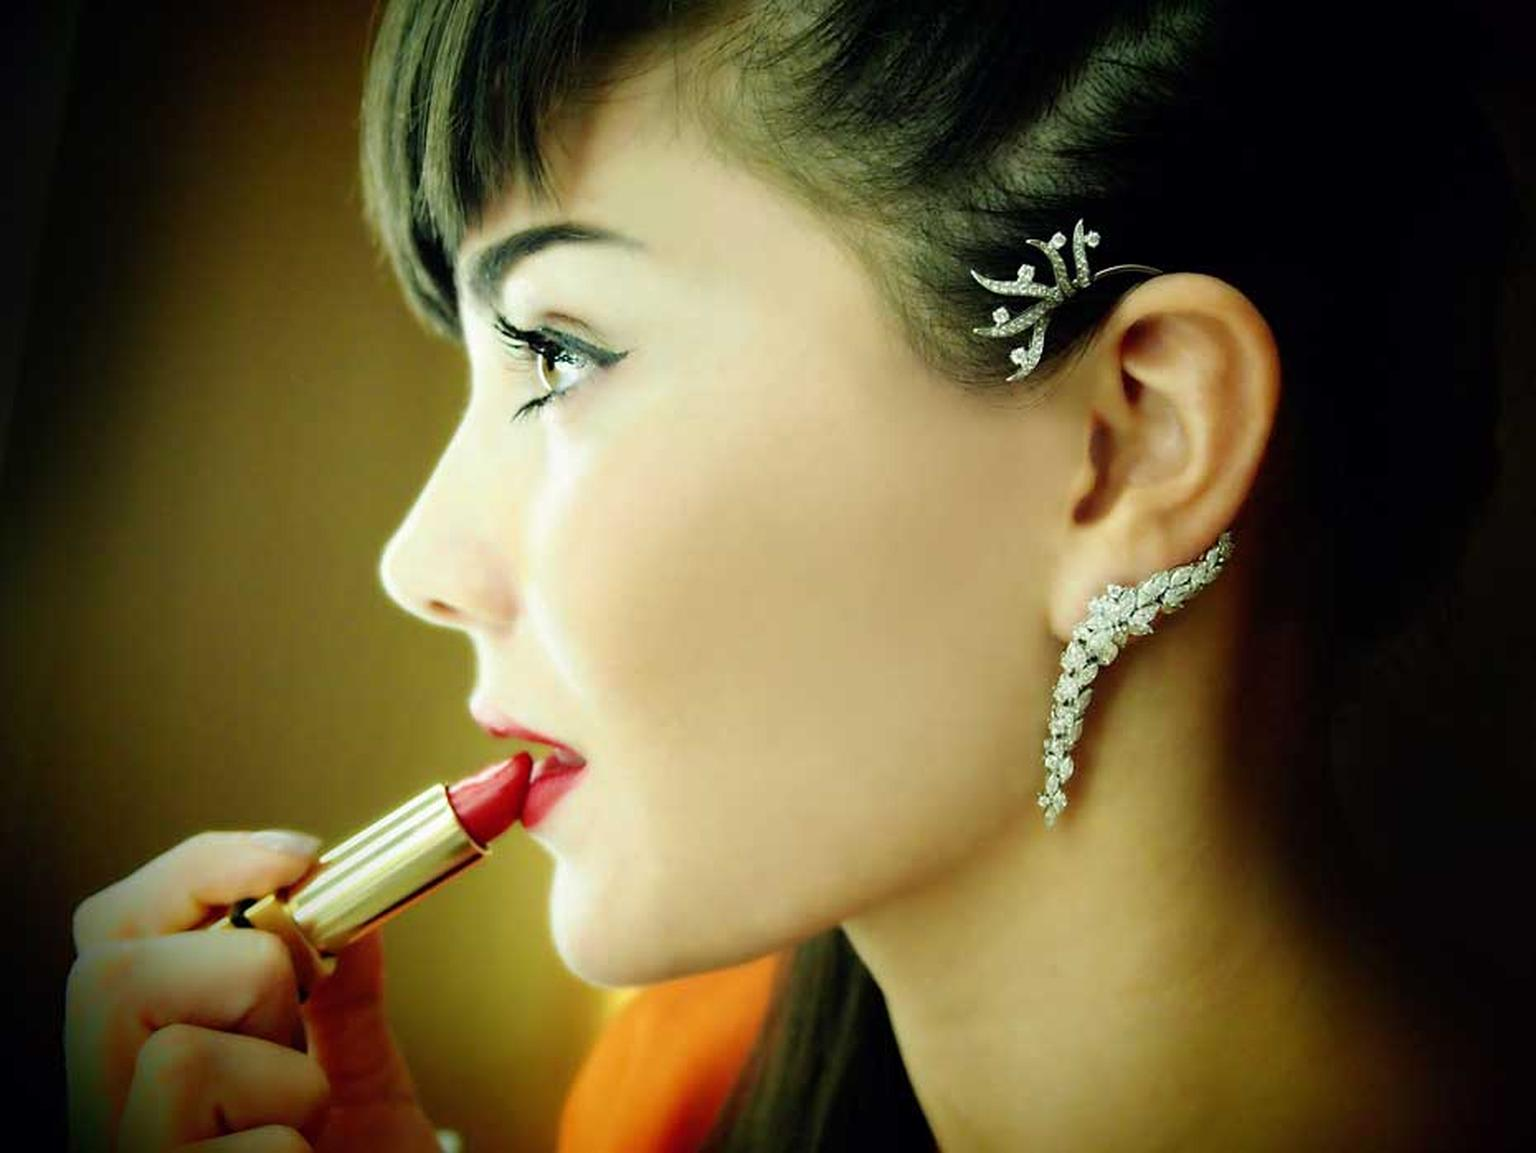 Yeprem Atlantis diamond ear cuff, available at Plukka.com (£7,812).